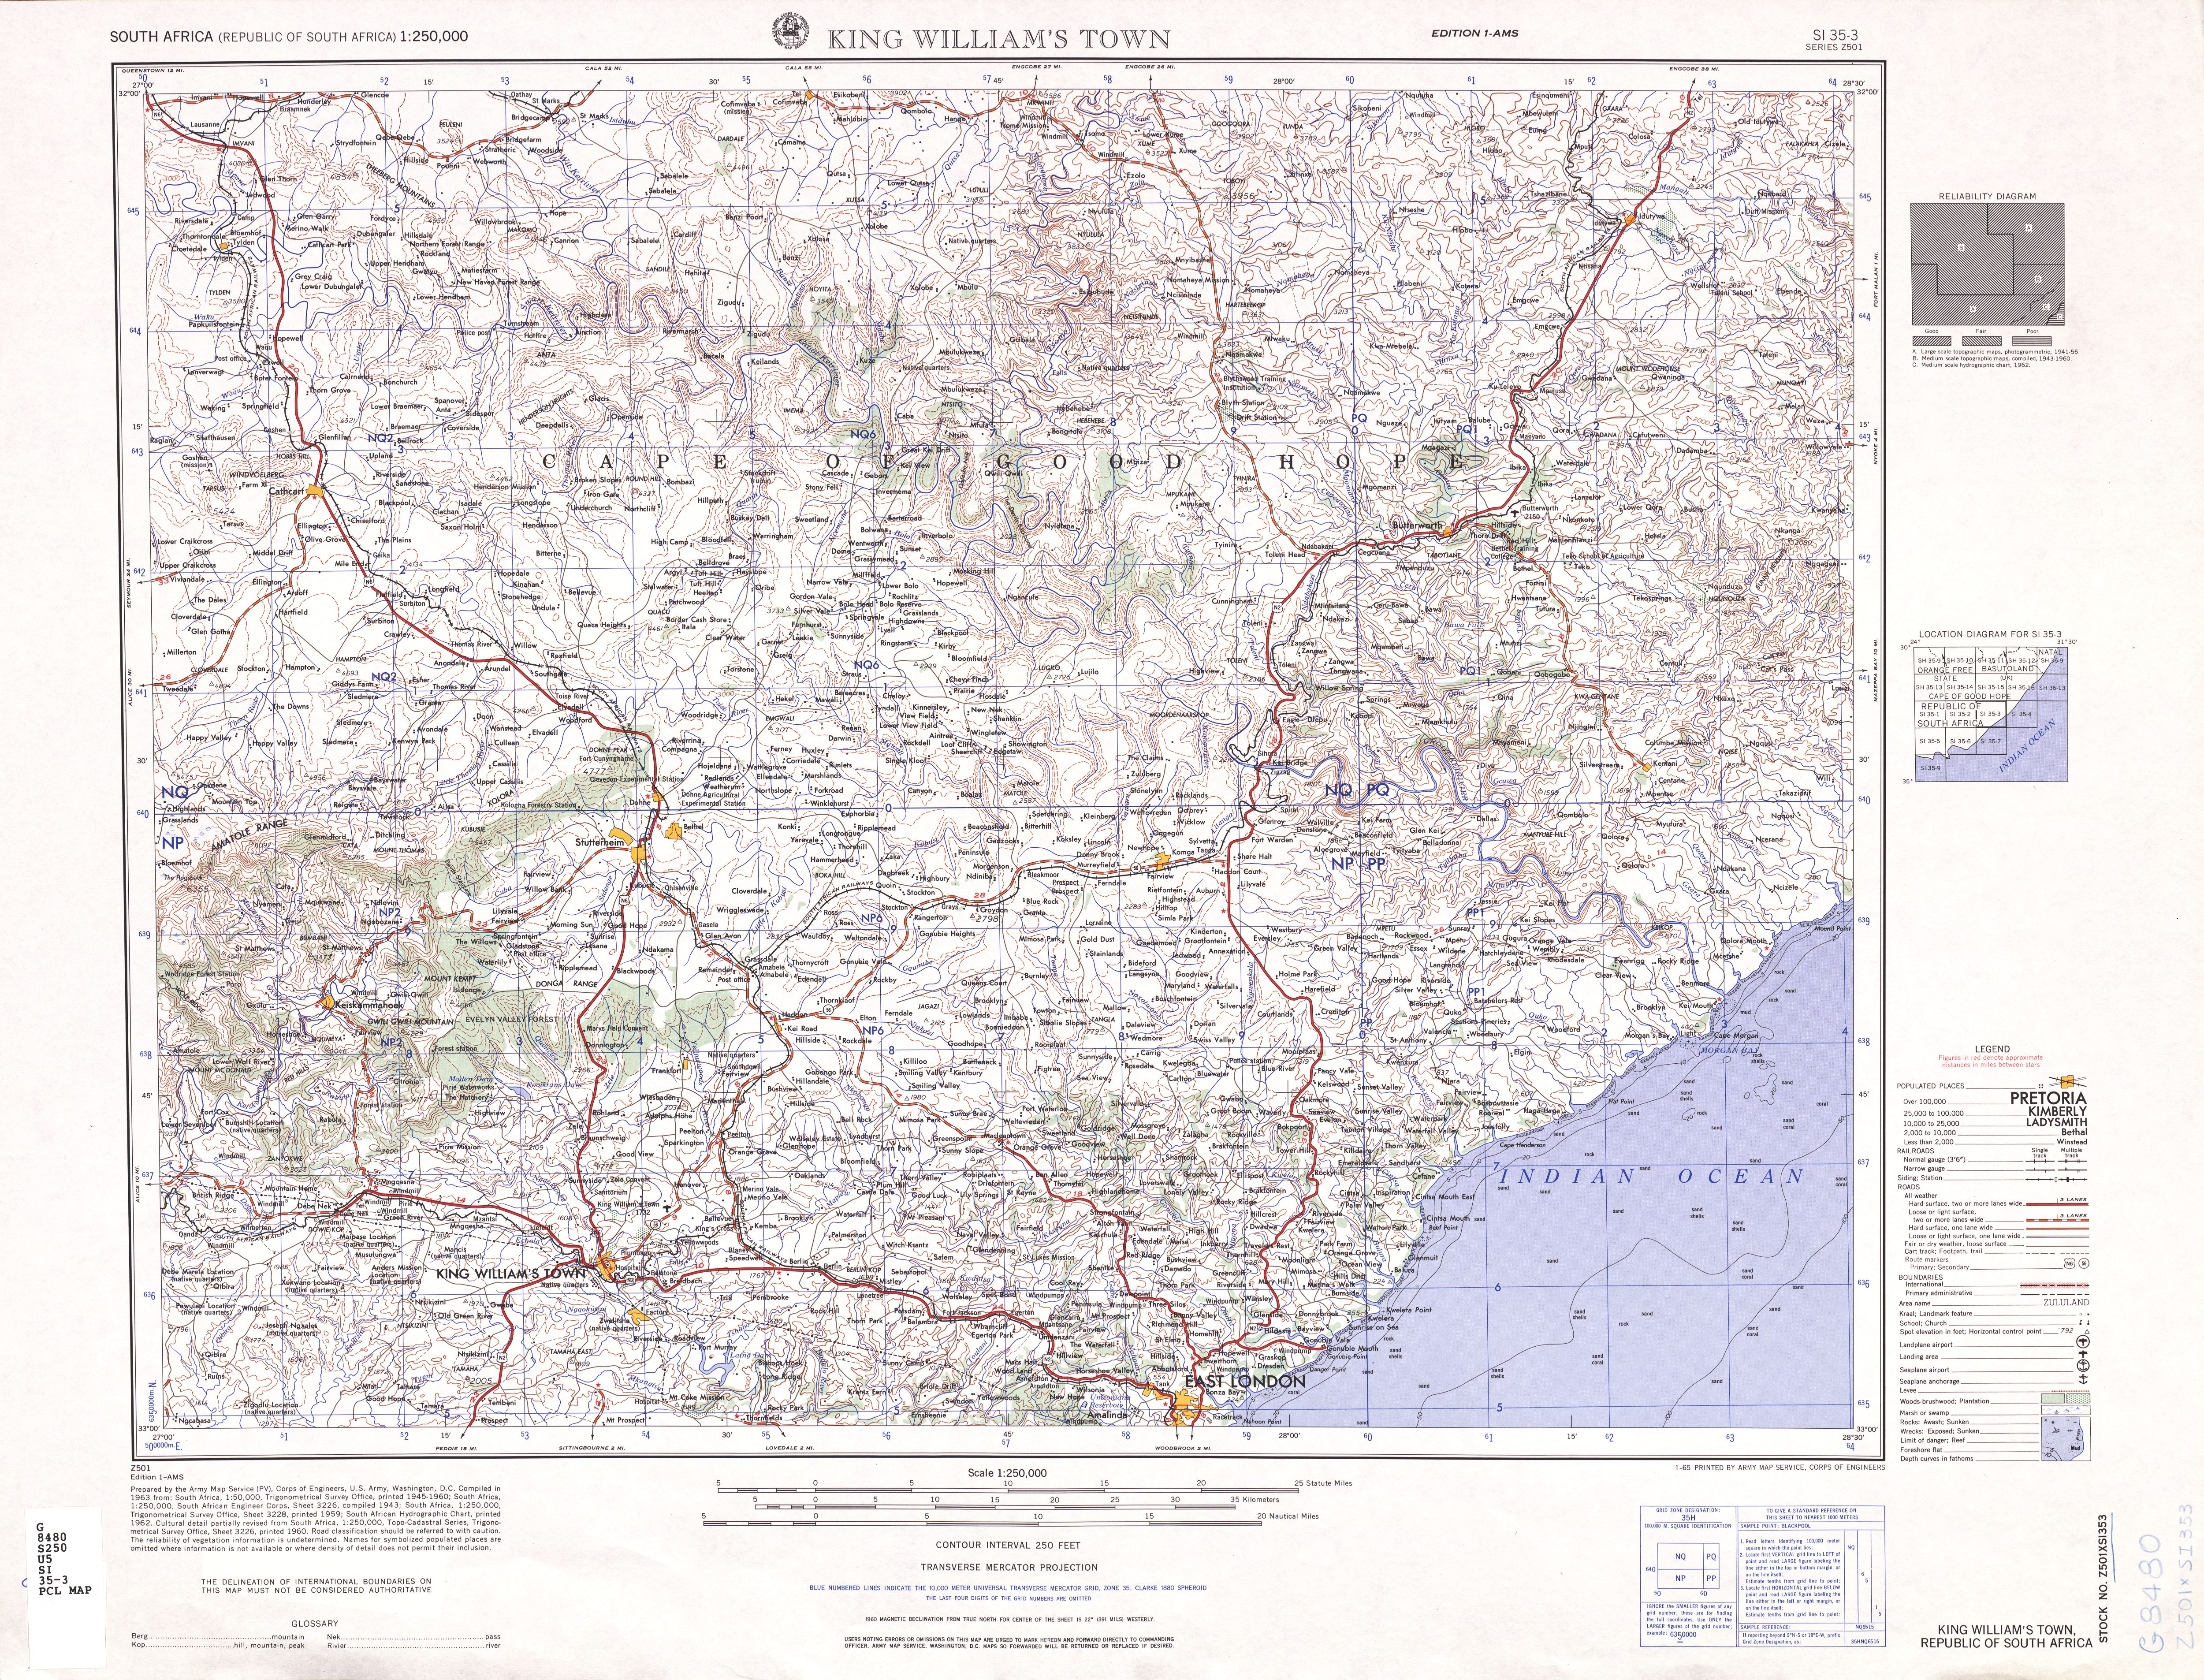 King William's Town Topographic Map Sheet, Southern Africa 1954